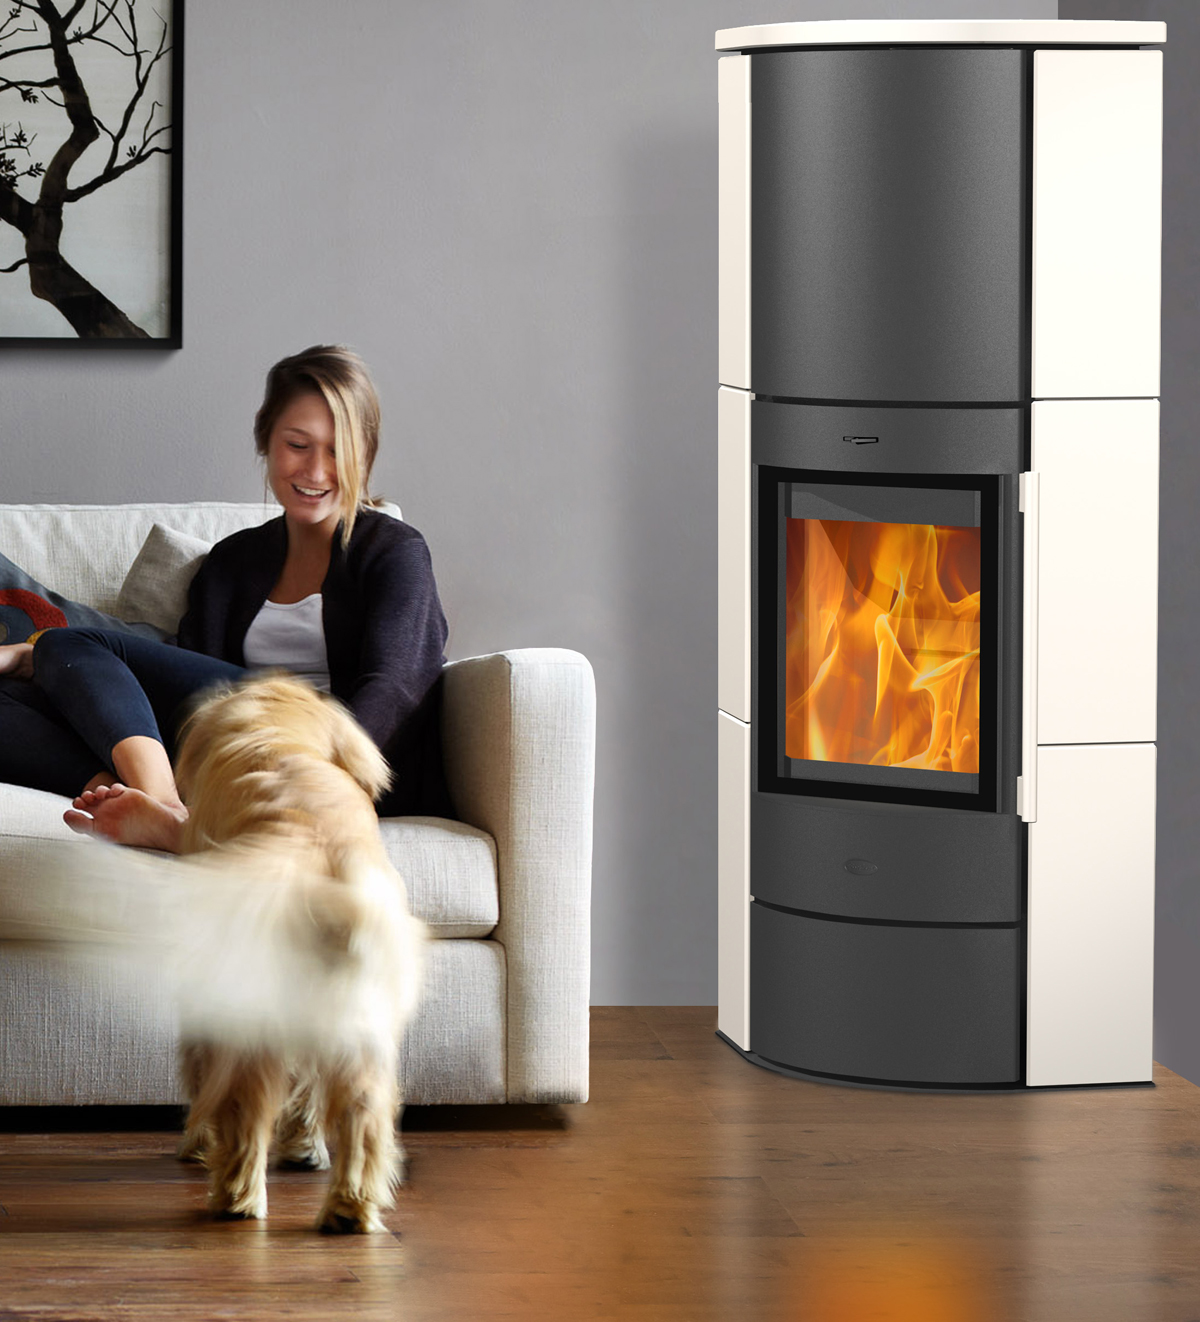 kaminofen fireplace eckkaminofen adelaide schwarz keramik wei 6kw bei. Black Bedroom Furniture Sets. Home Design Ideas